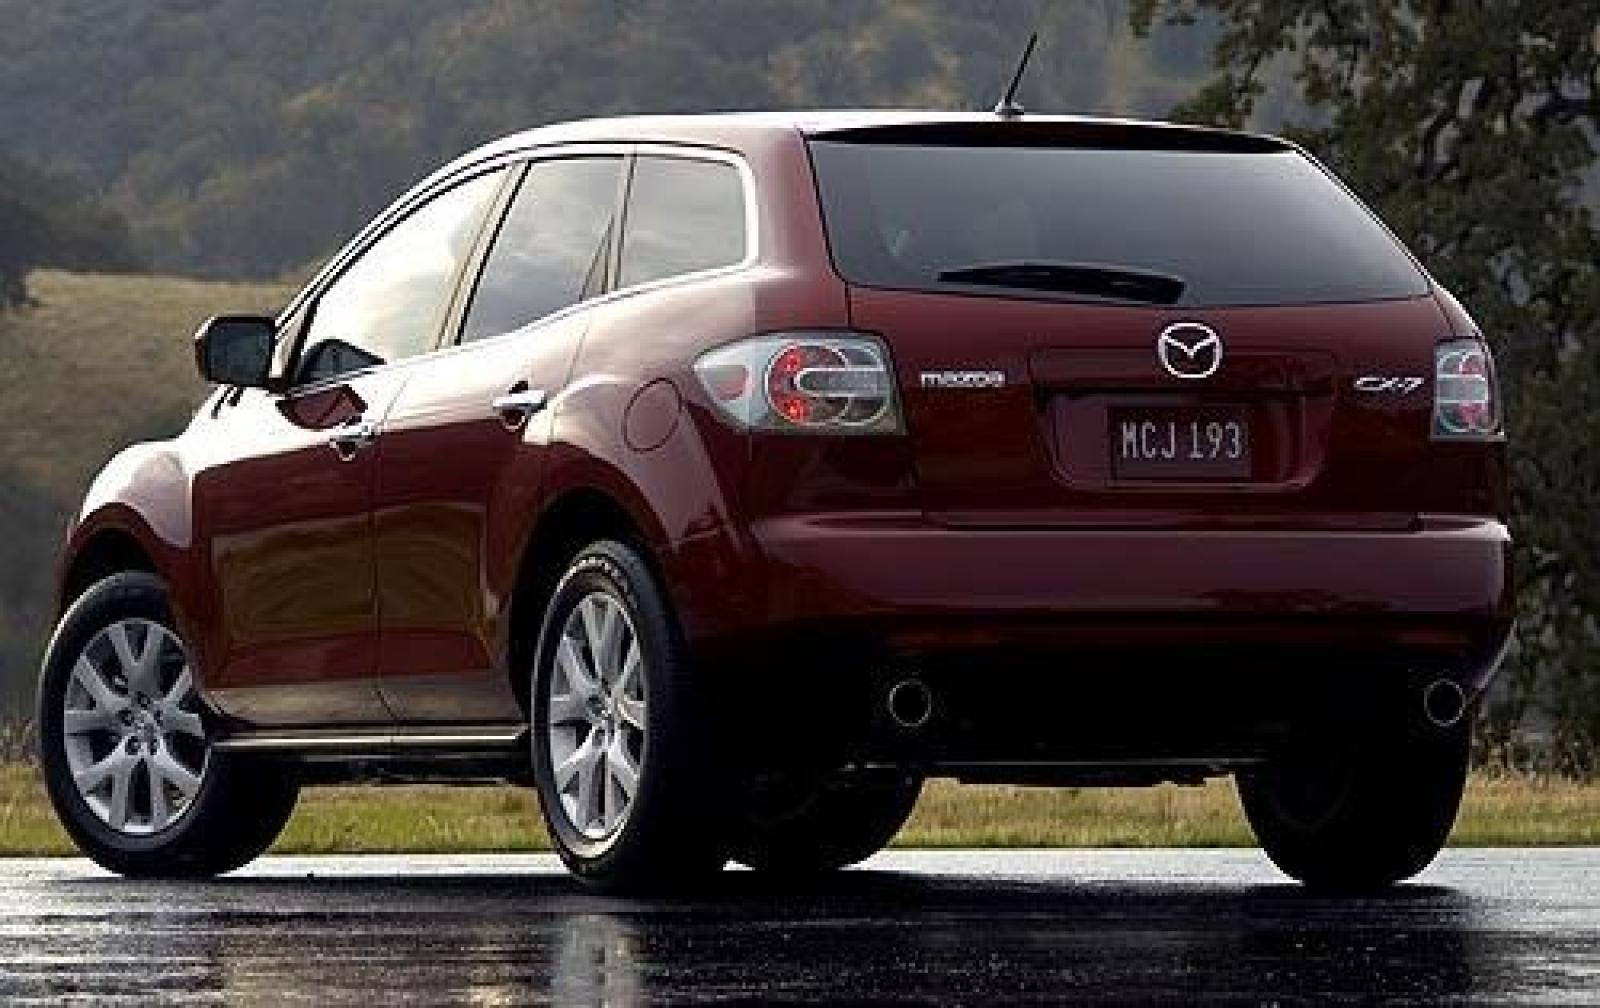 2009 mazda cx 7 information and photos zombiedrive. Black Bedroom Furniture Sets. Home Design Ideas